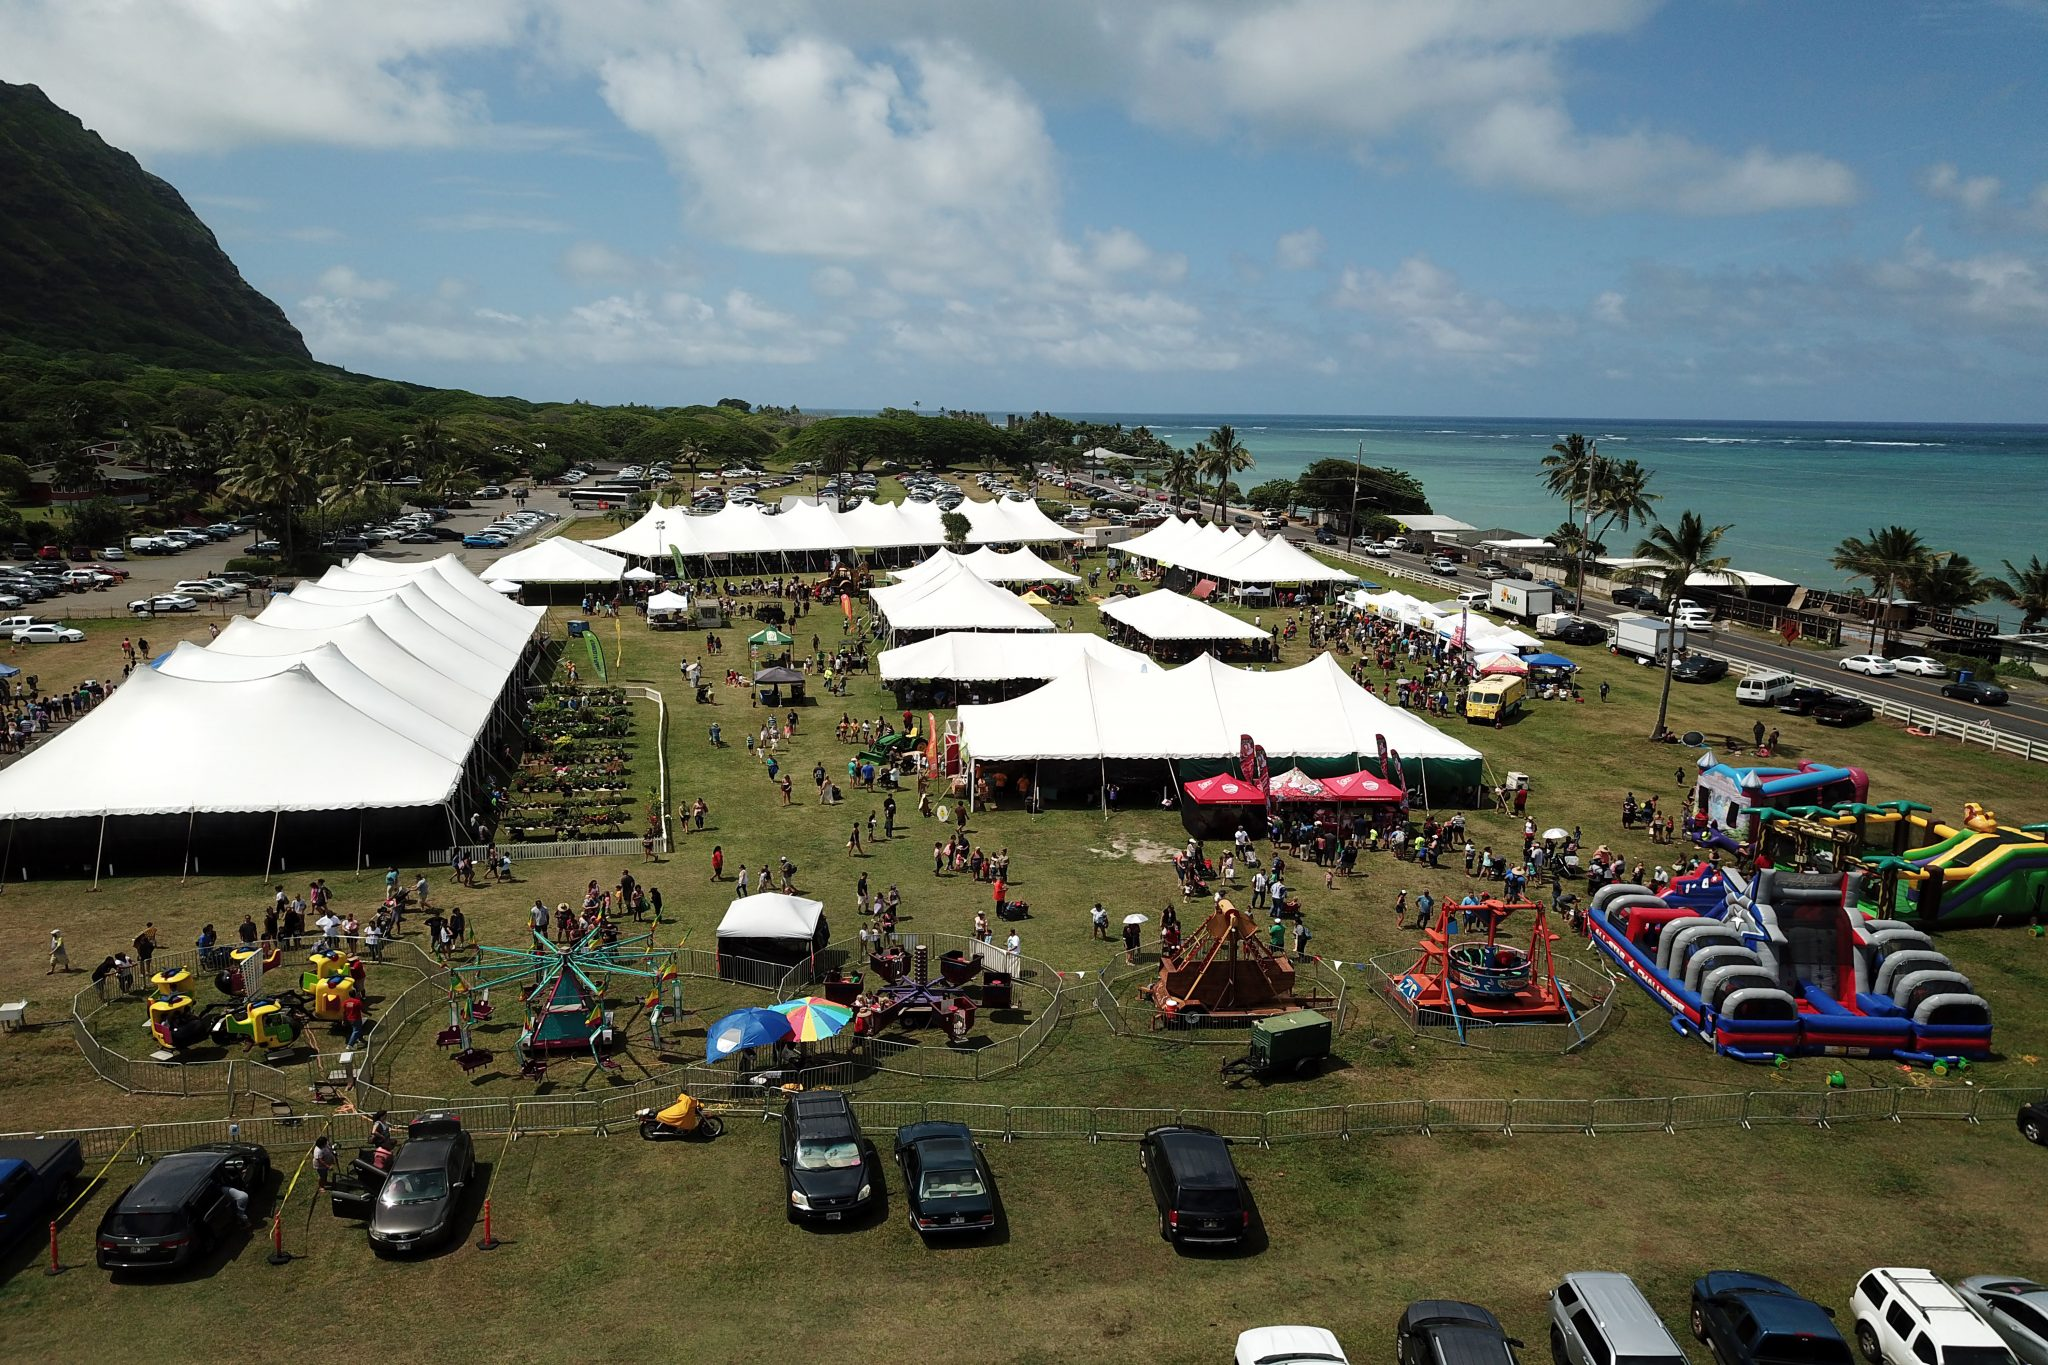 57th ANNUAL HAWAII STATE FARM FAIR